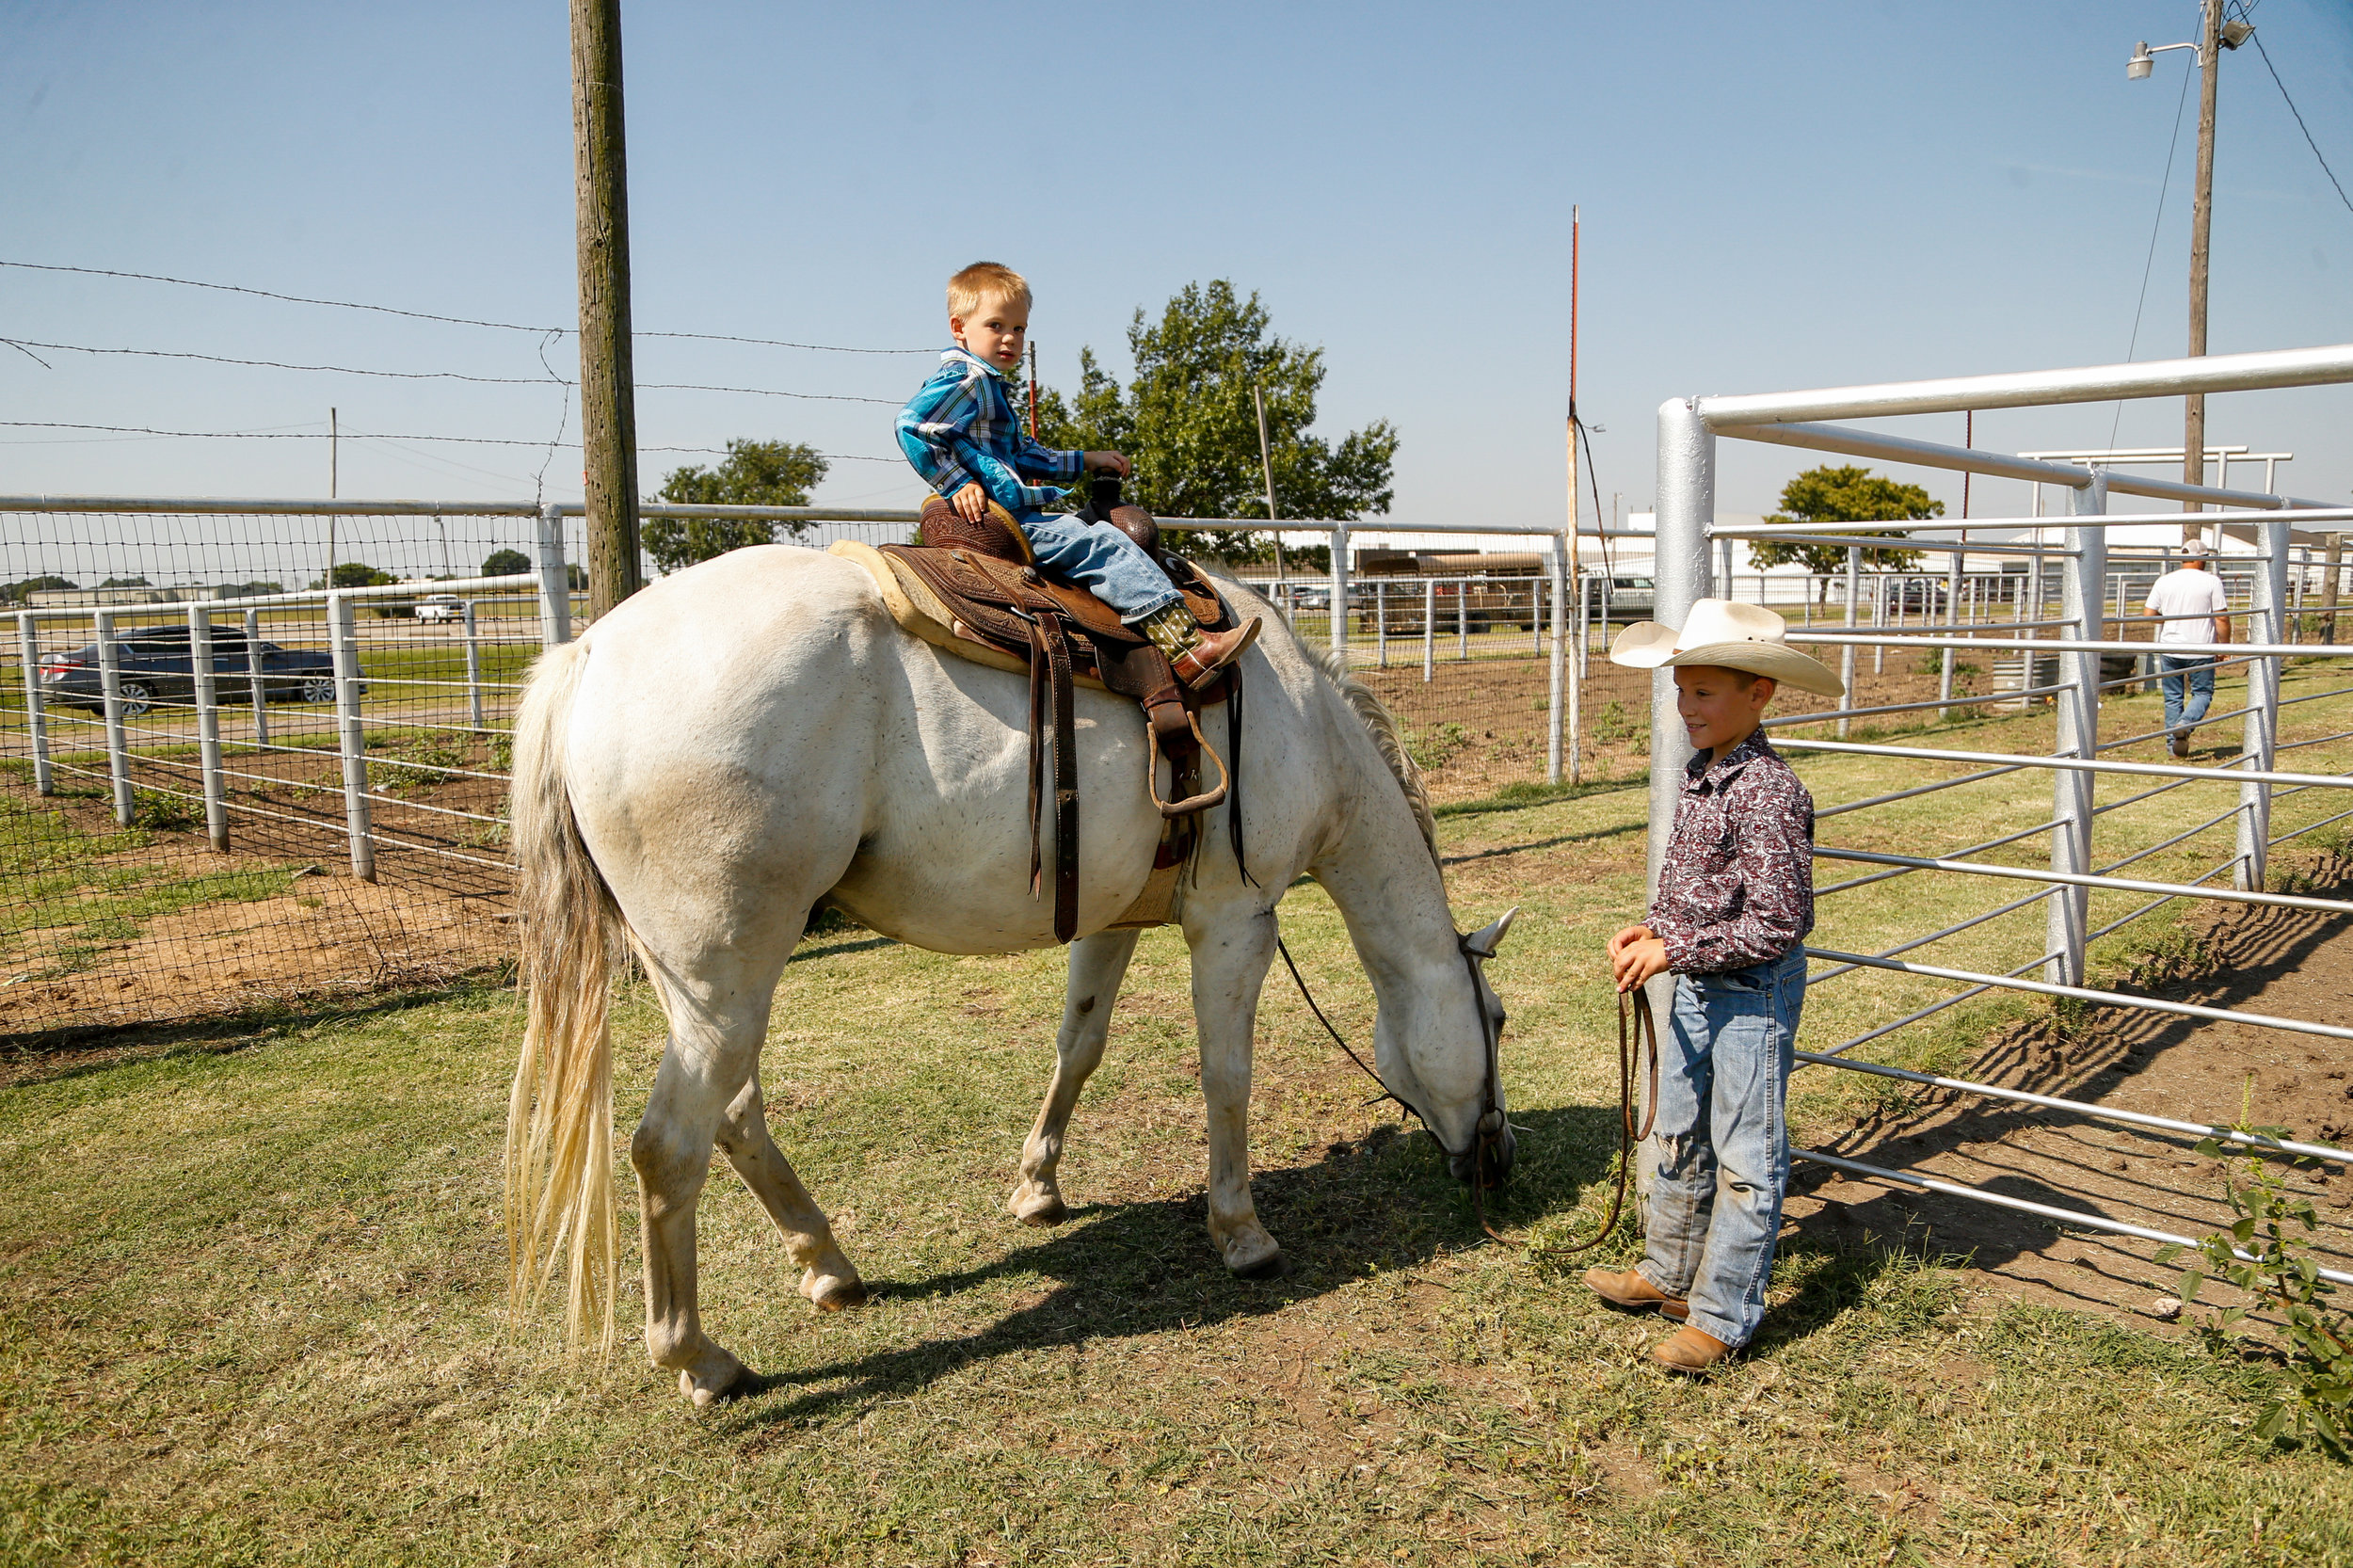 A pair of young boys walk their horse around the pens at a youth ranch rodeo at the 101 Arena in Ponca City on July 27, 2019.